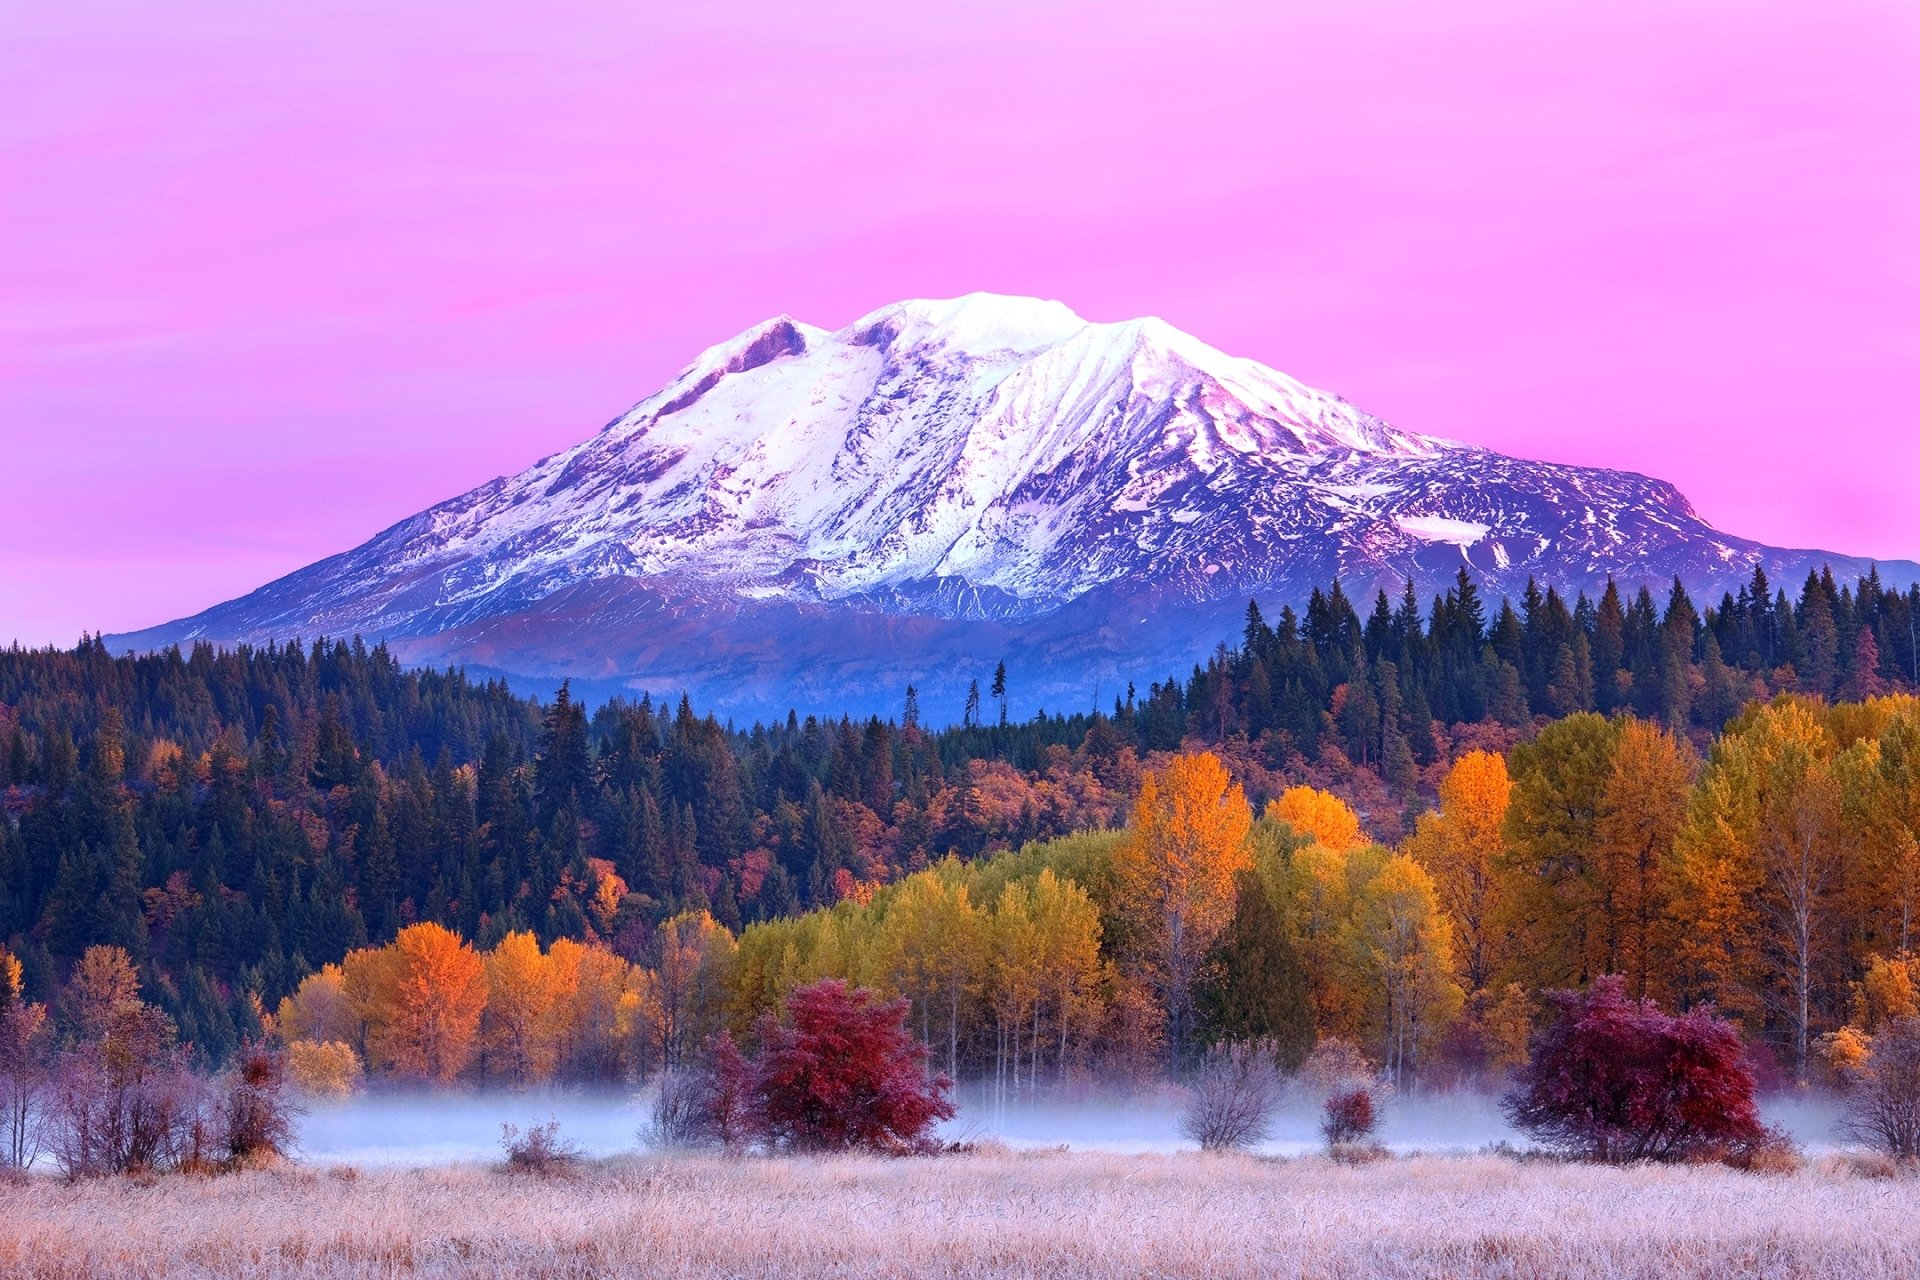 Fall Forest Hd Wallpaper Mount Adams Full Hd Wallpaper And Background Image